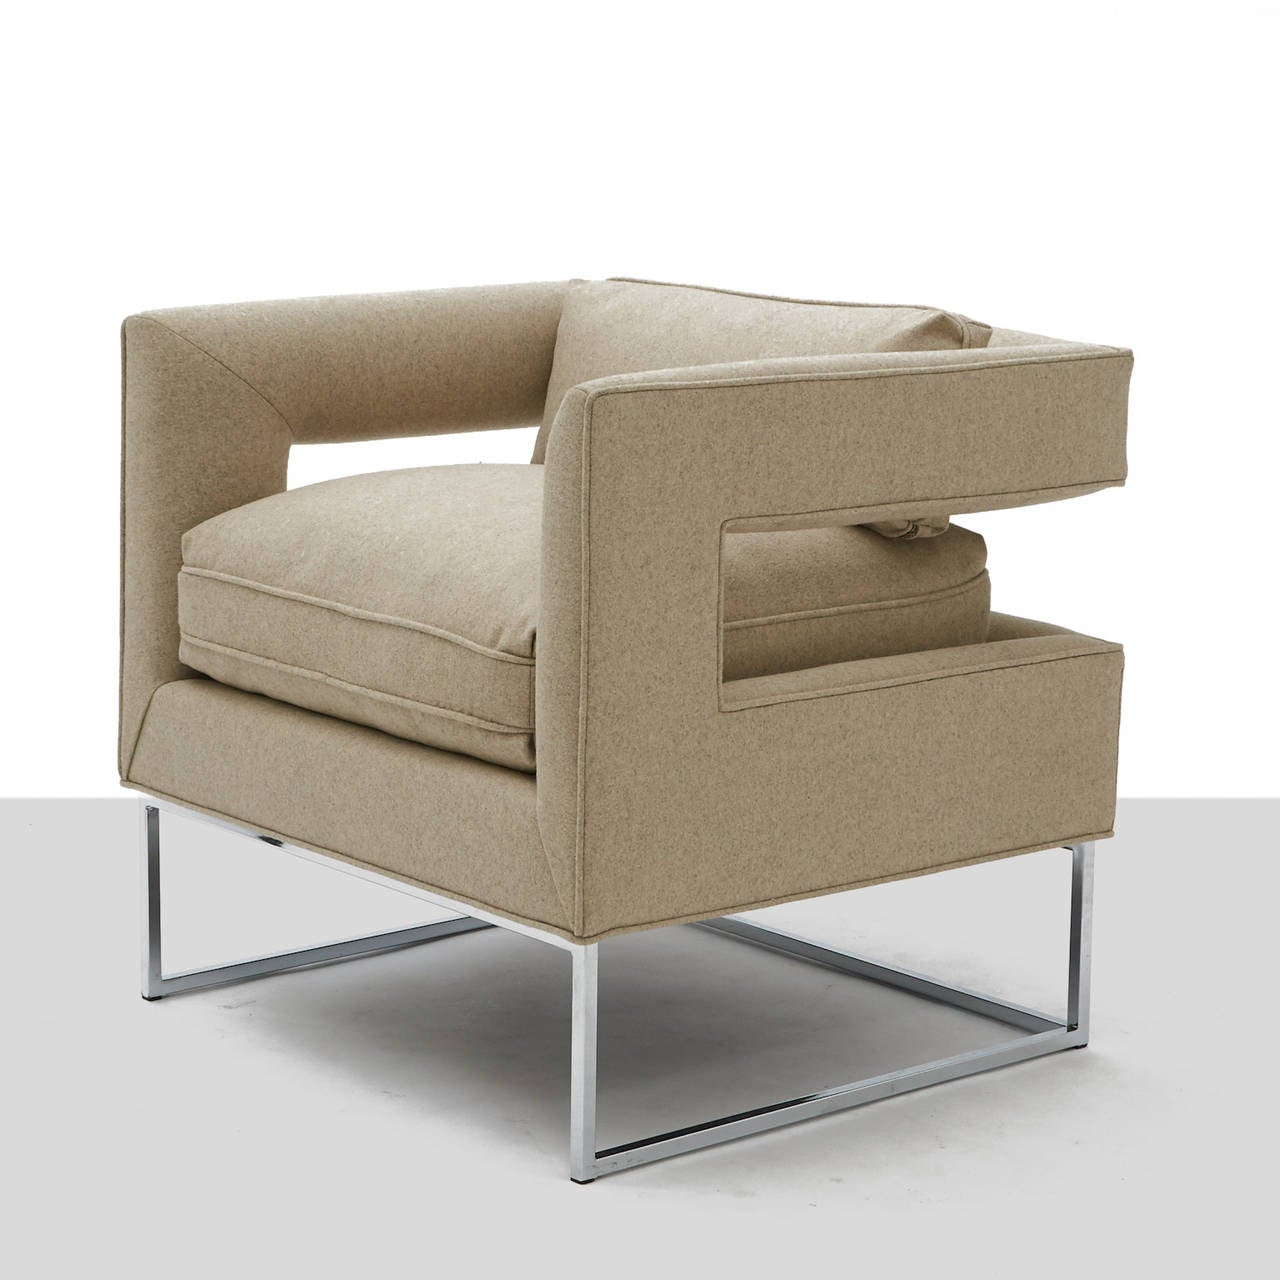 Mid-Century Modern Milo Baughman, Cut-Out Lounge Chairs For Sale